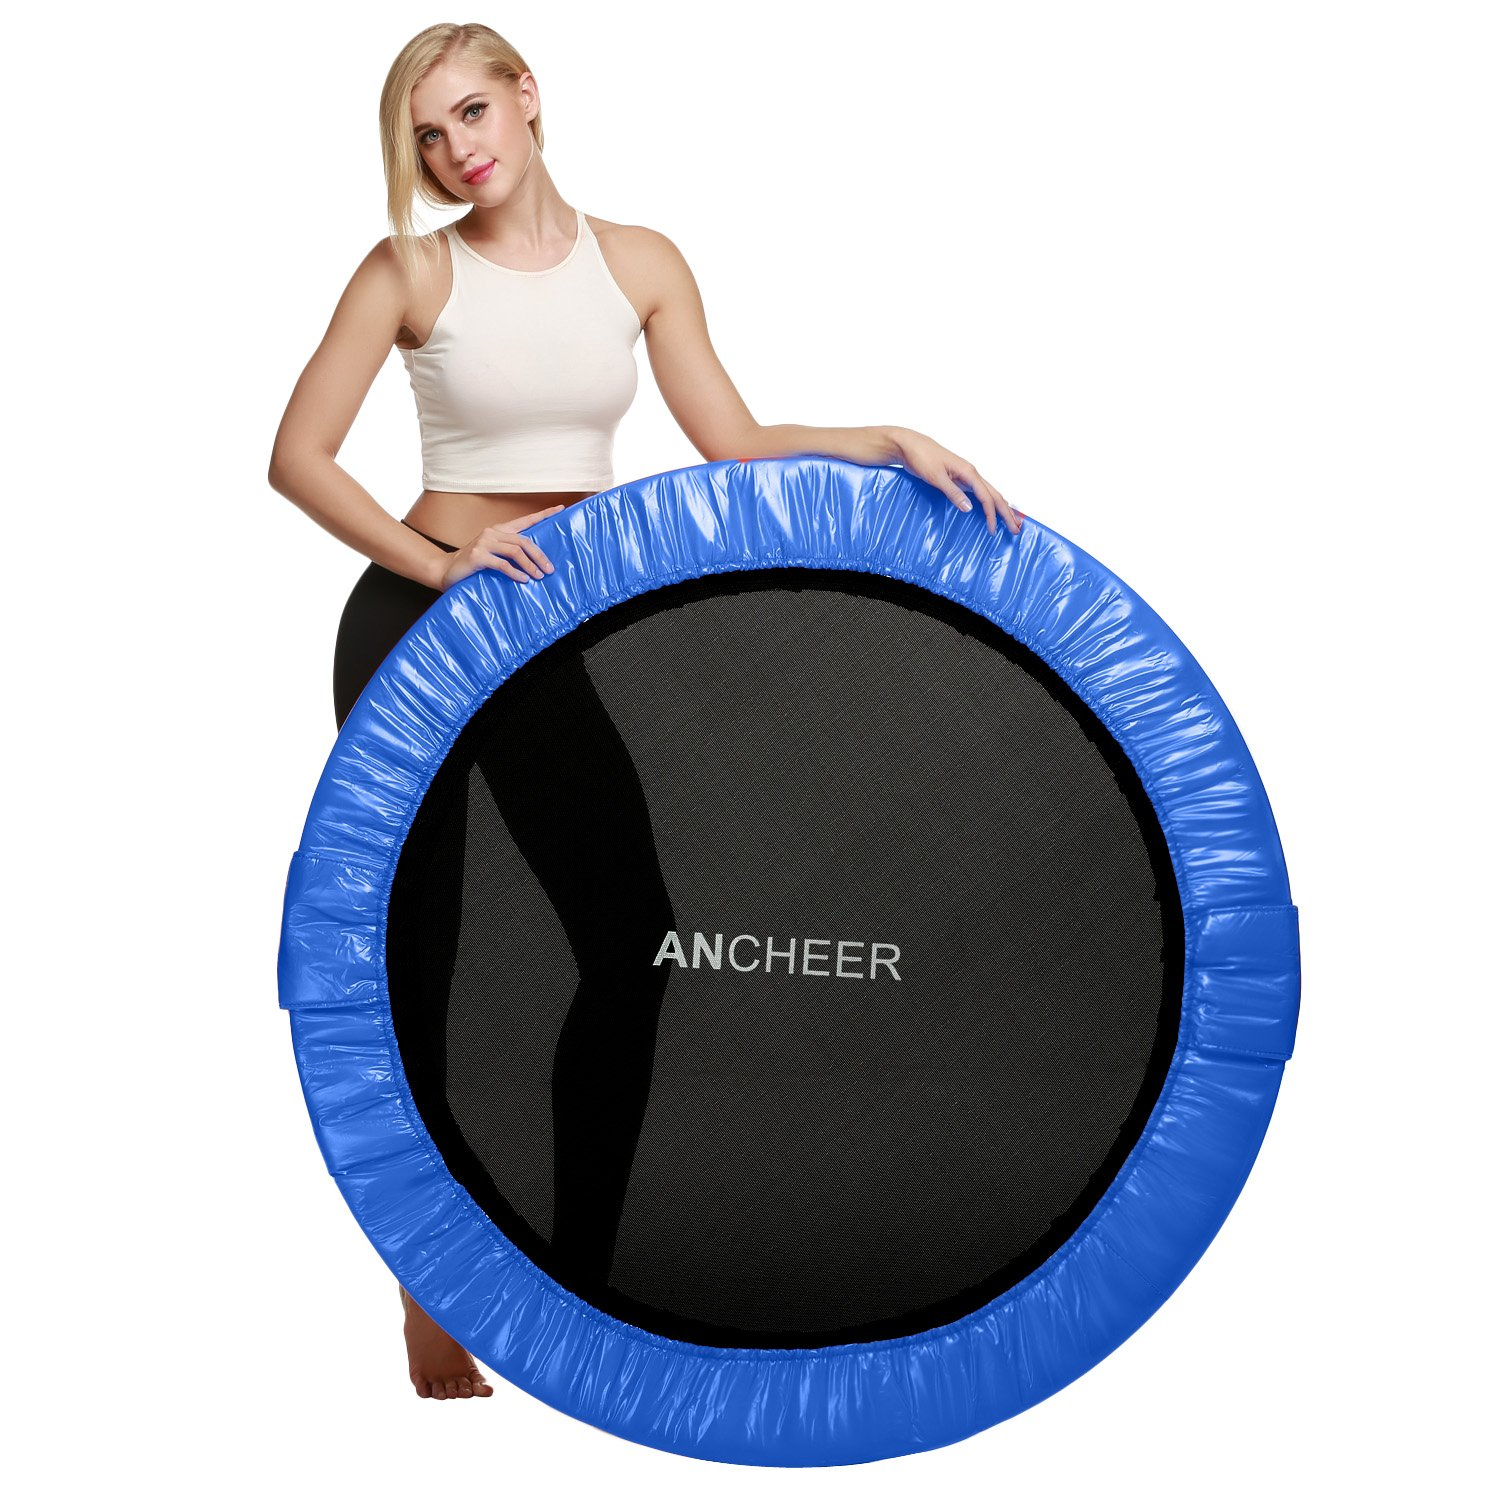 ANCHEER Max Load 220lbs Rebounder Trampoline with Safety Pad for Indoor Garden Workout Cardio Training (2 Sizes: 38 inch/40 inch, Two Modes: Folding/Not Folding) by ANCHEER (Image #8)